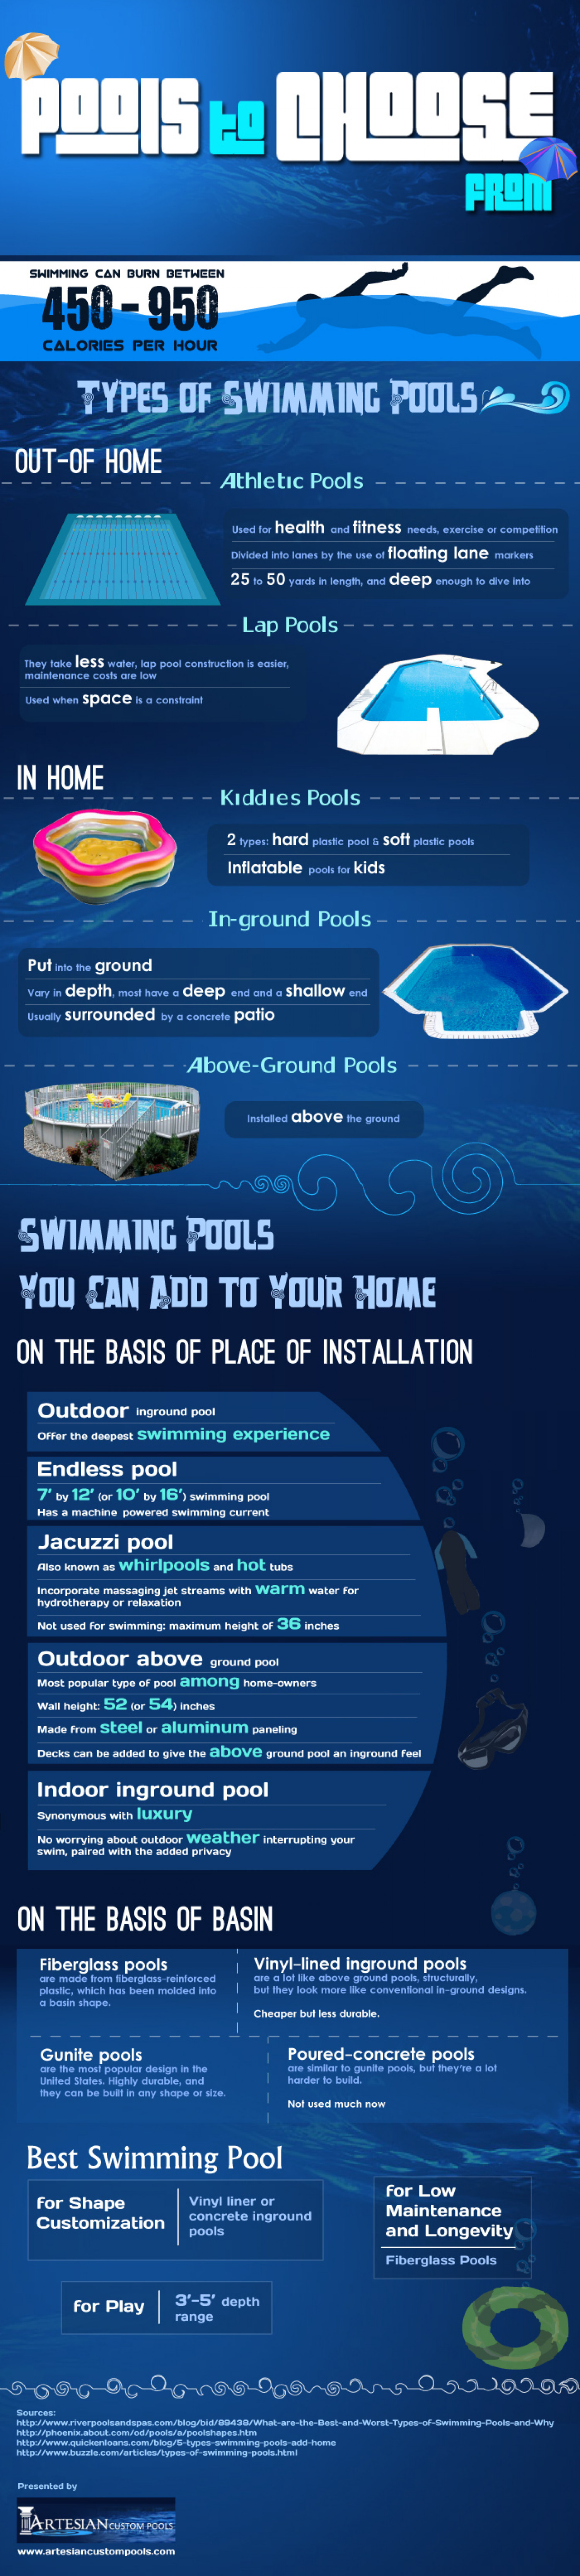 Pools to choose from  Infographic